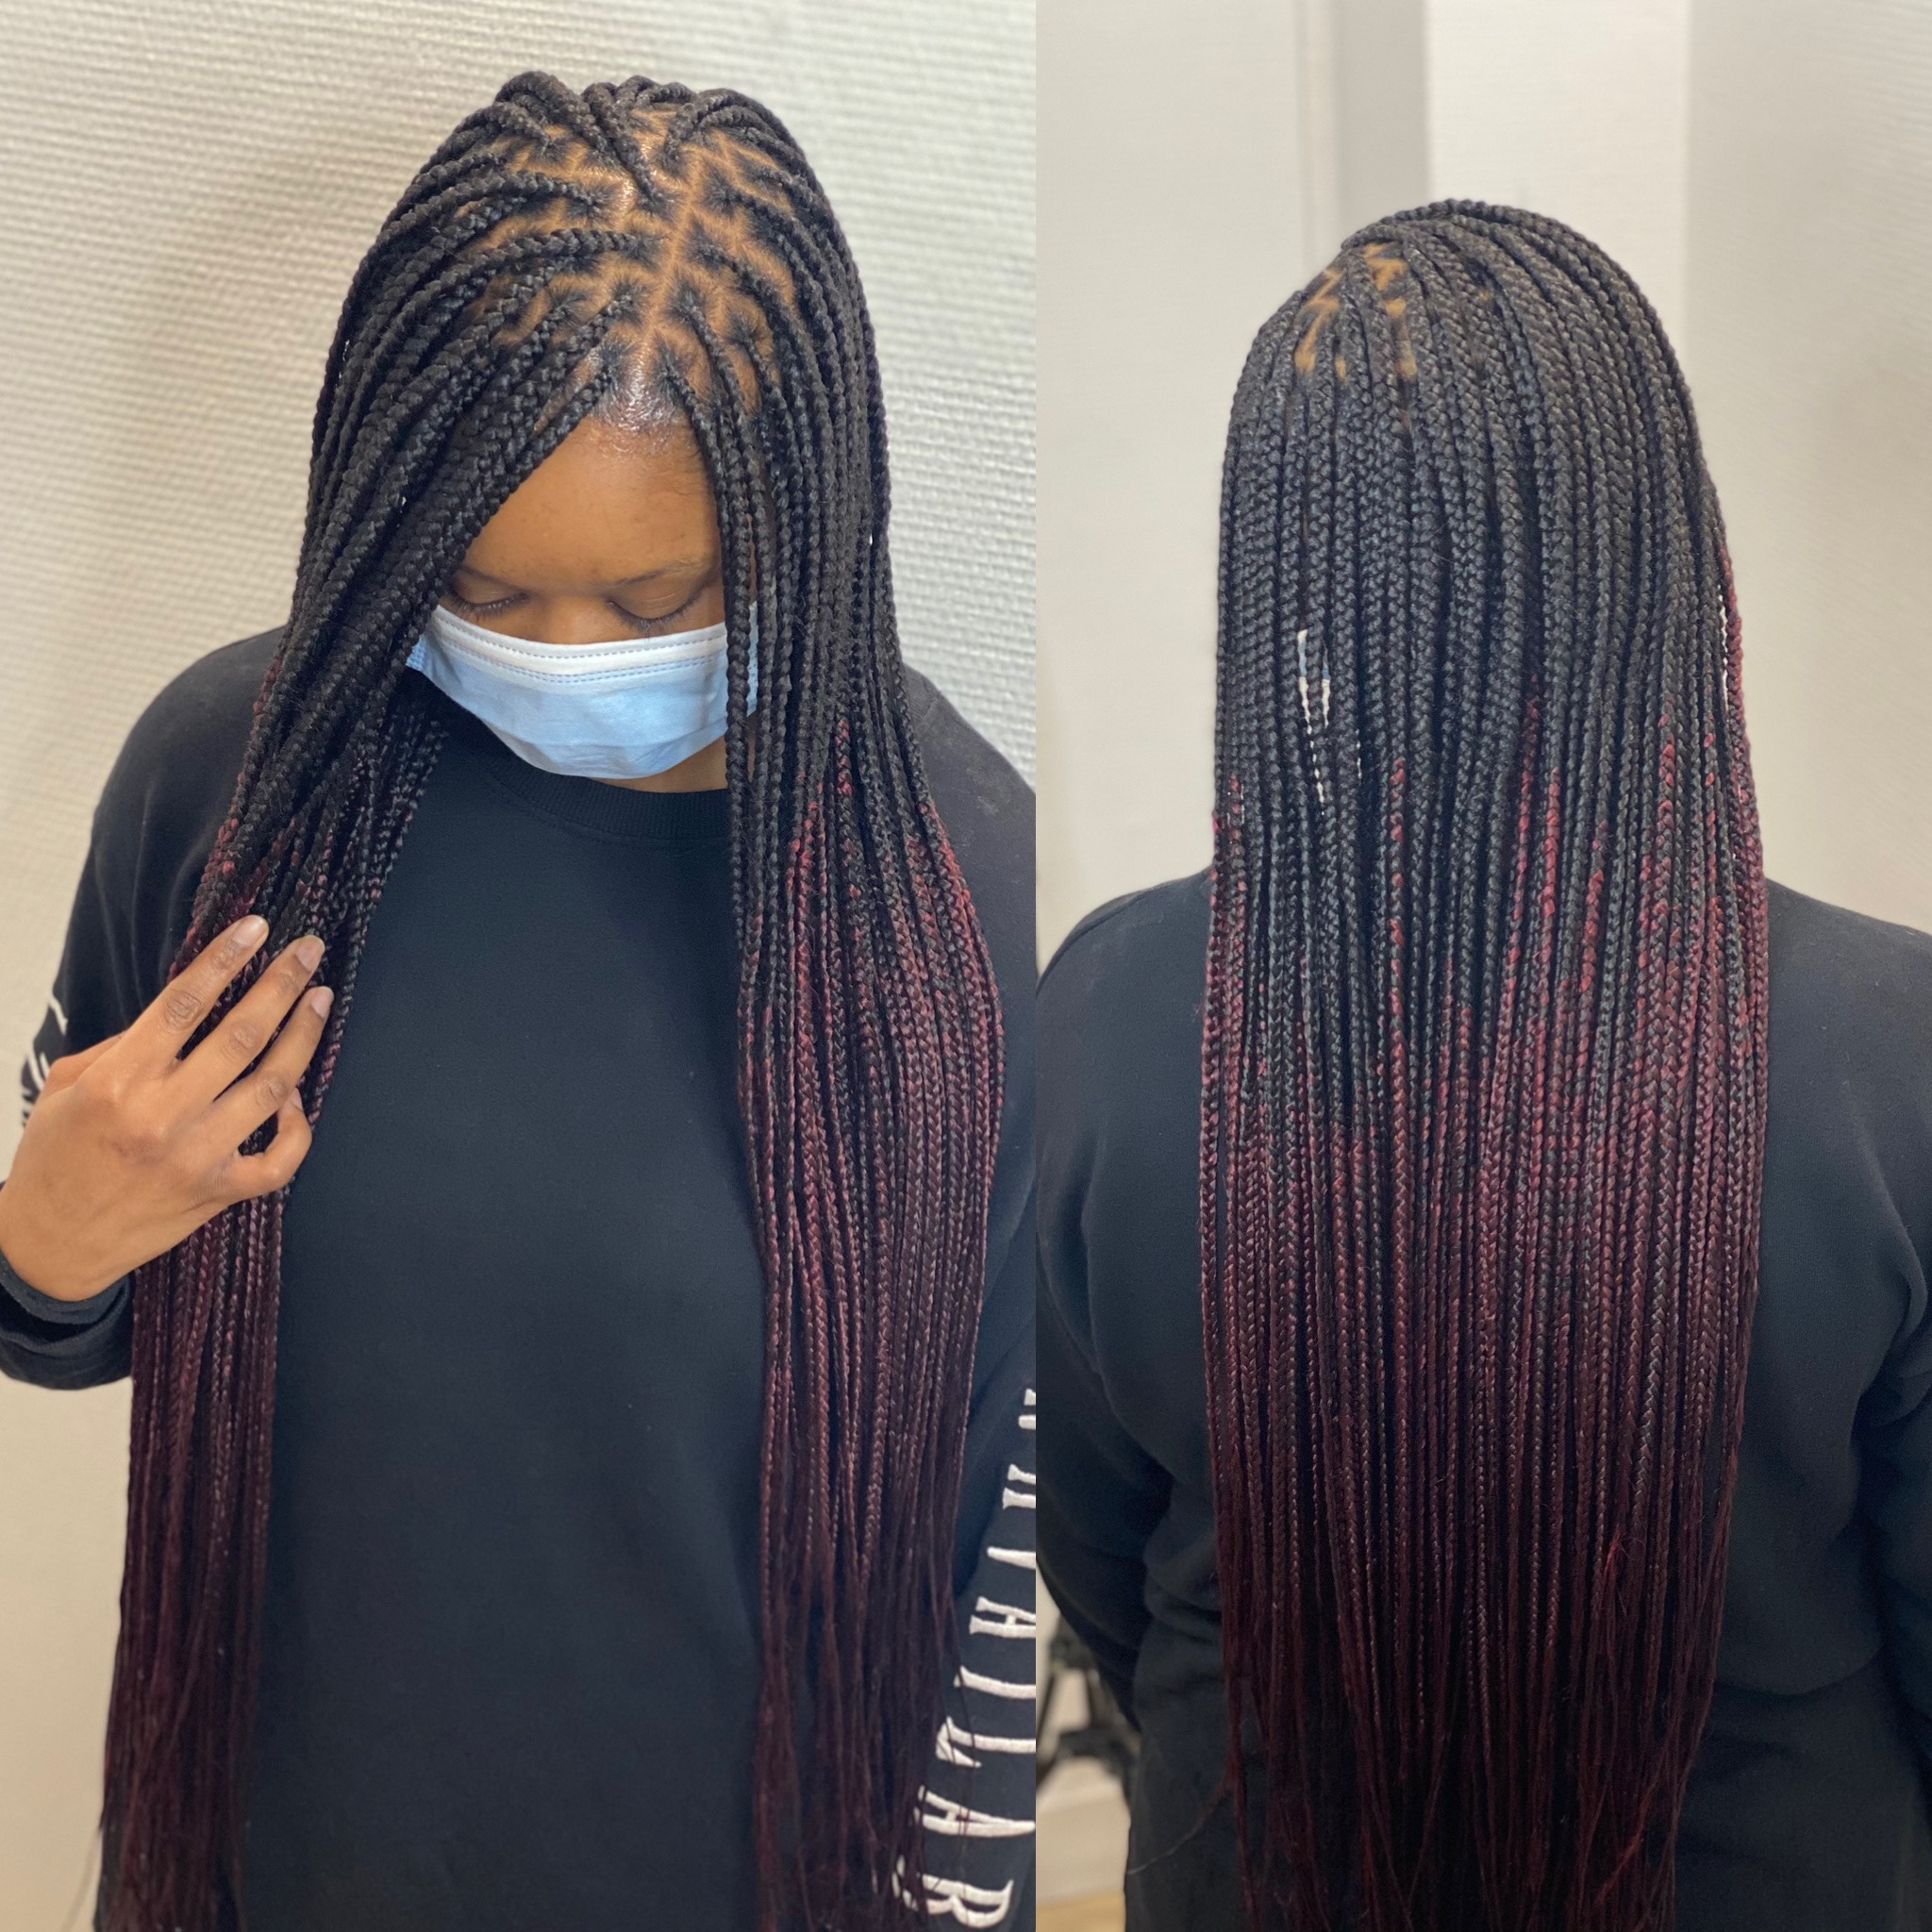 salon de coiffure afro tresse tresses box braids crochet braids vanilles tissages paris 75 77 78 91 92 93 94 95 JEFVDYXM